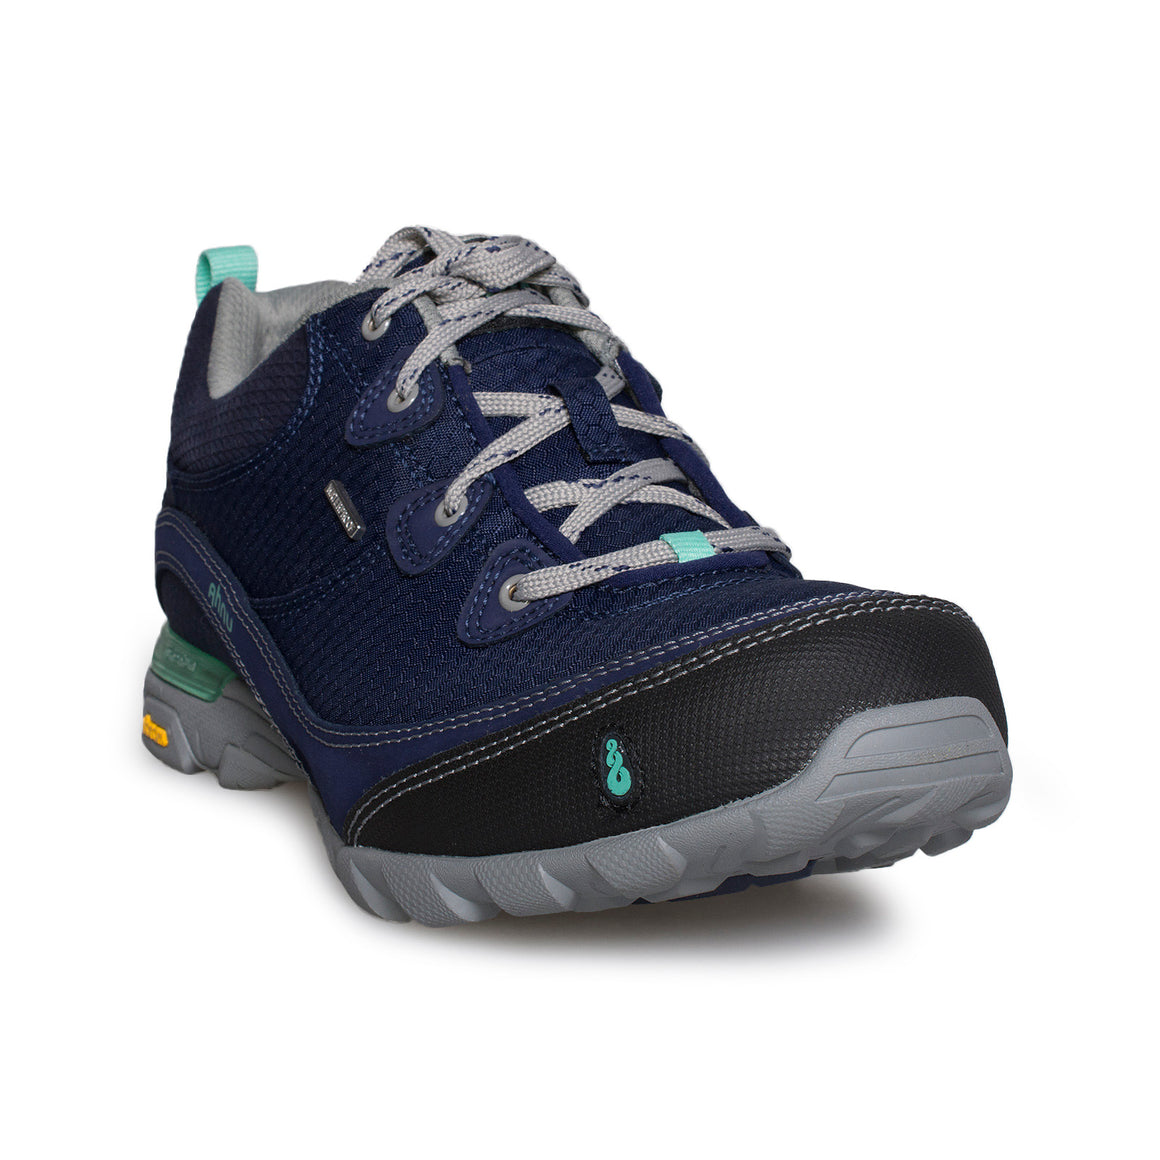 Ahnu Sugarpine WP Majestic Blue Shoes